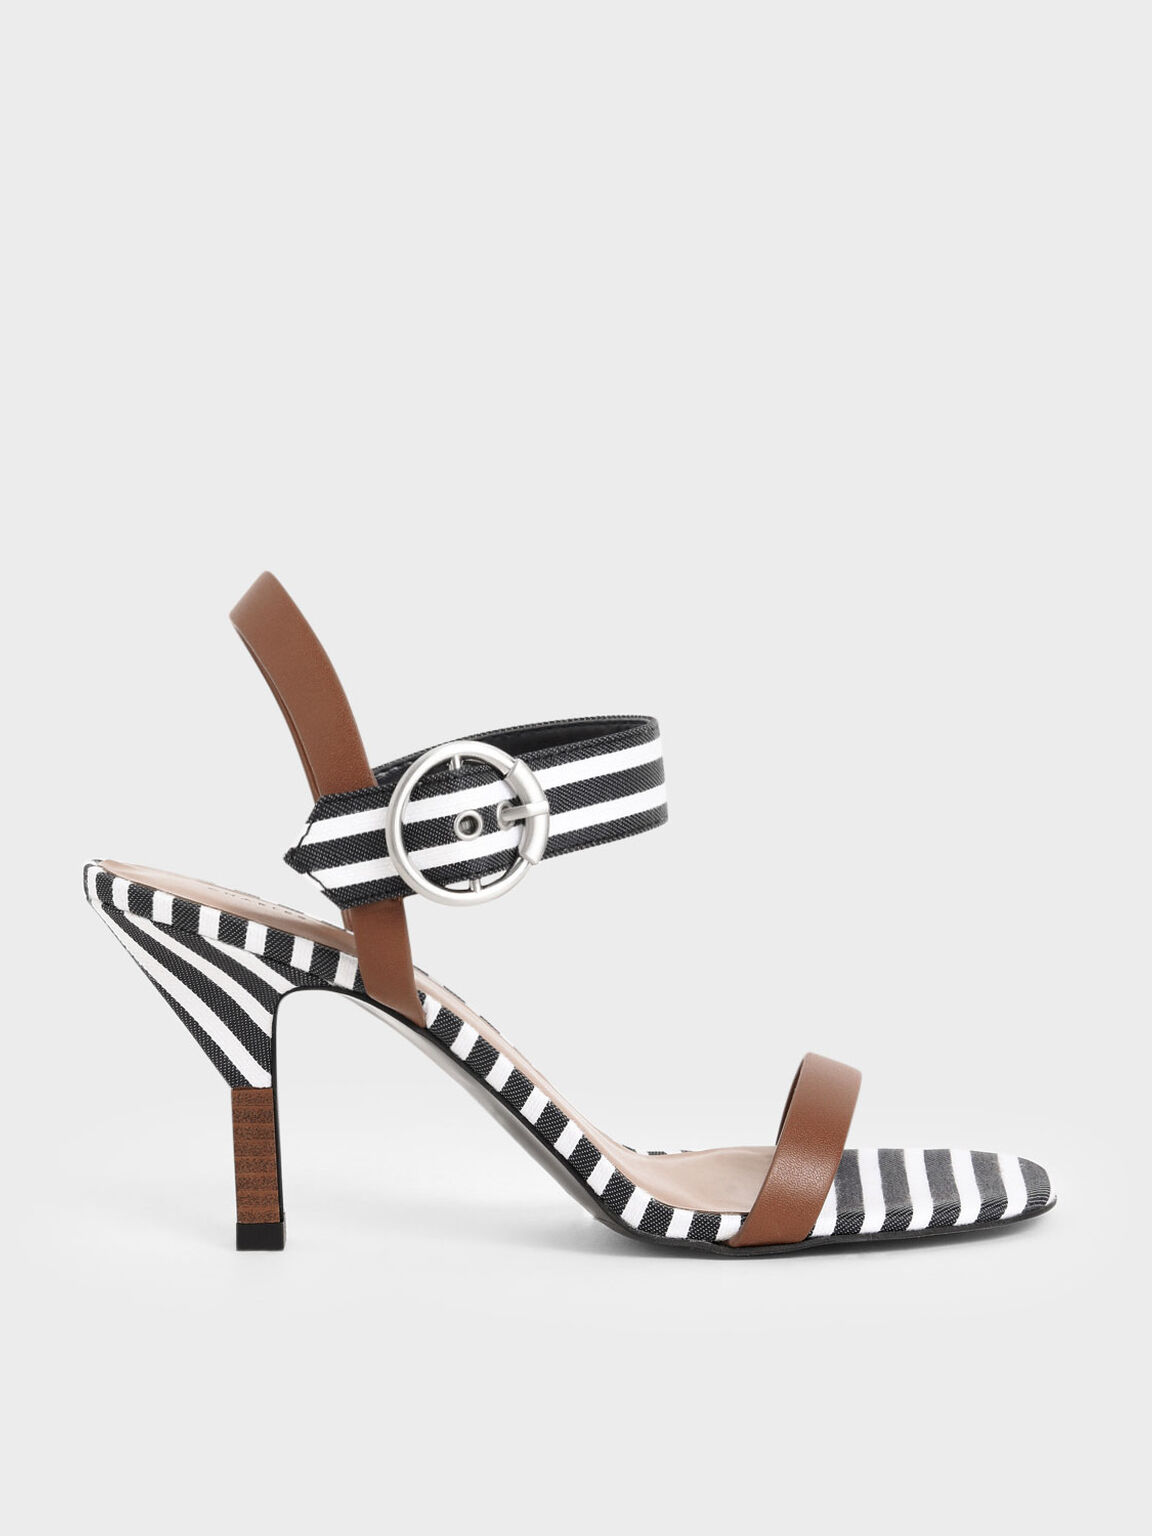 Oversized Buckle Striped Heeled Sandals, Dark Blue, hi-res